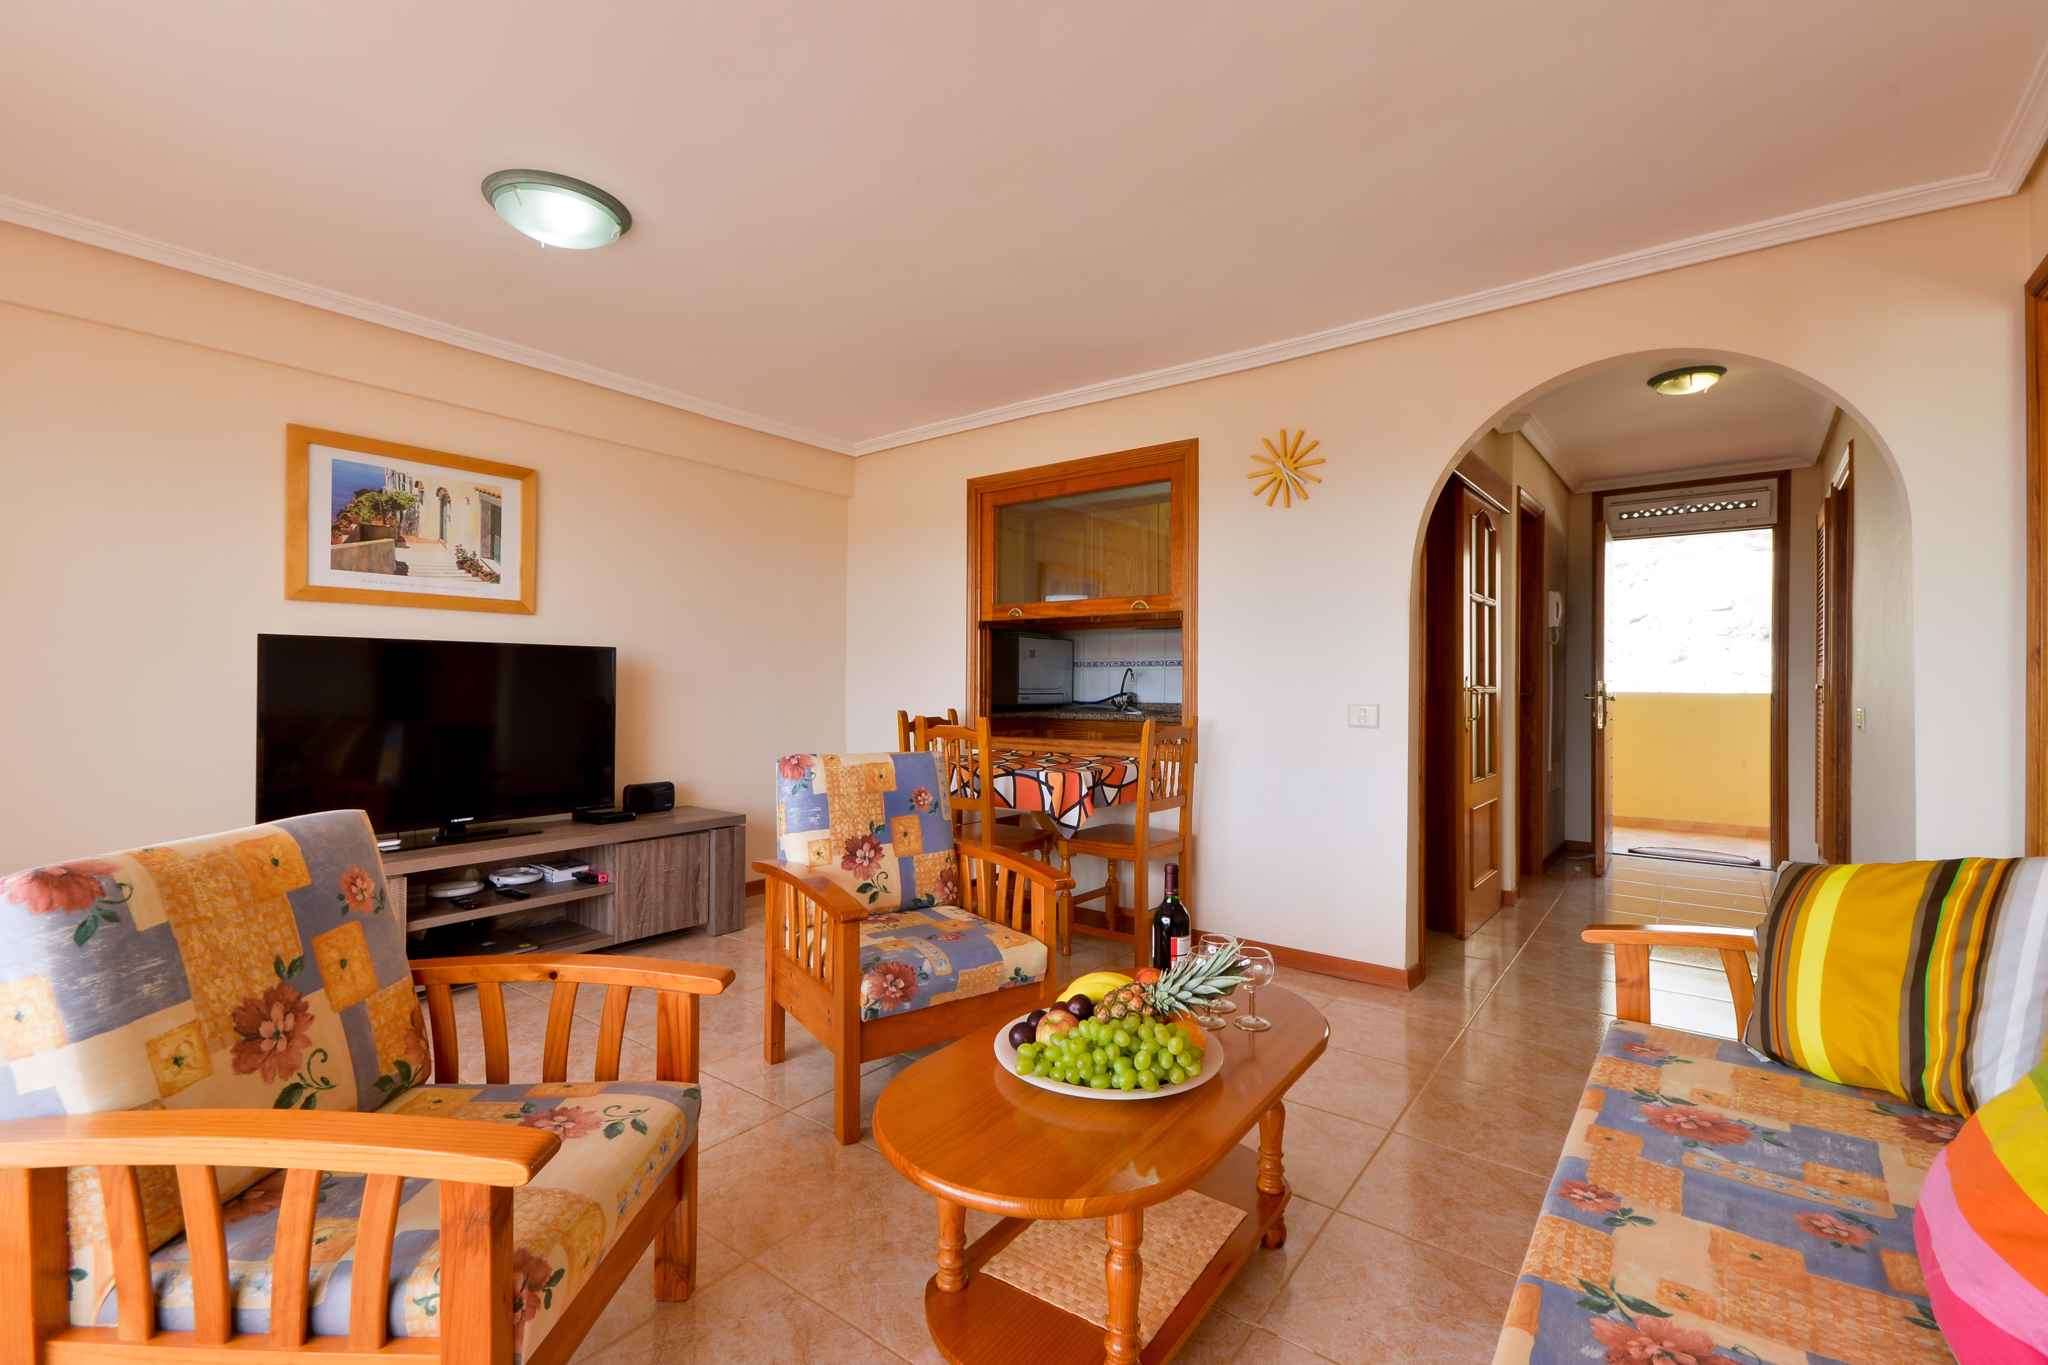 Holiday apartment mit Meerblick und Wifi in Strandnähe (1685535), Palm-Mar, Tenerife, Canary Islands, Spain, picture 19